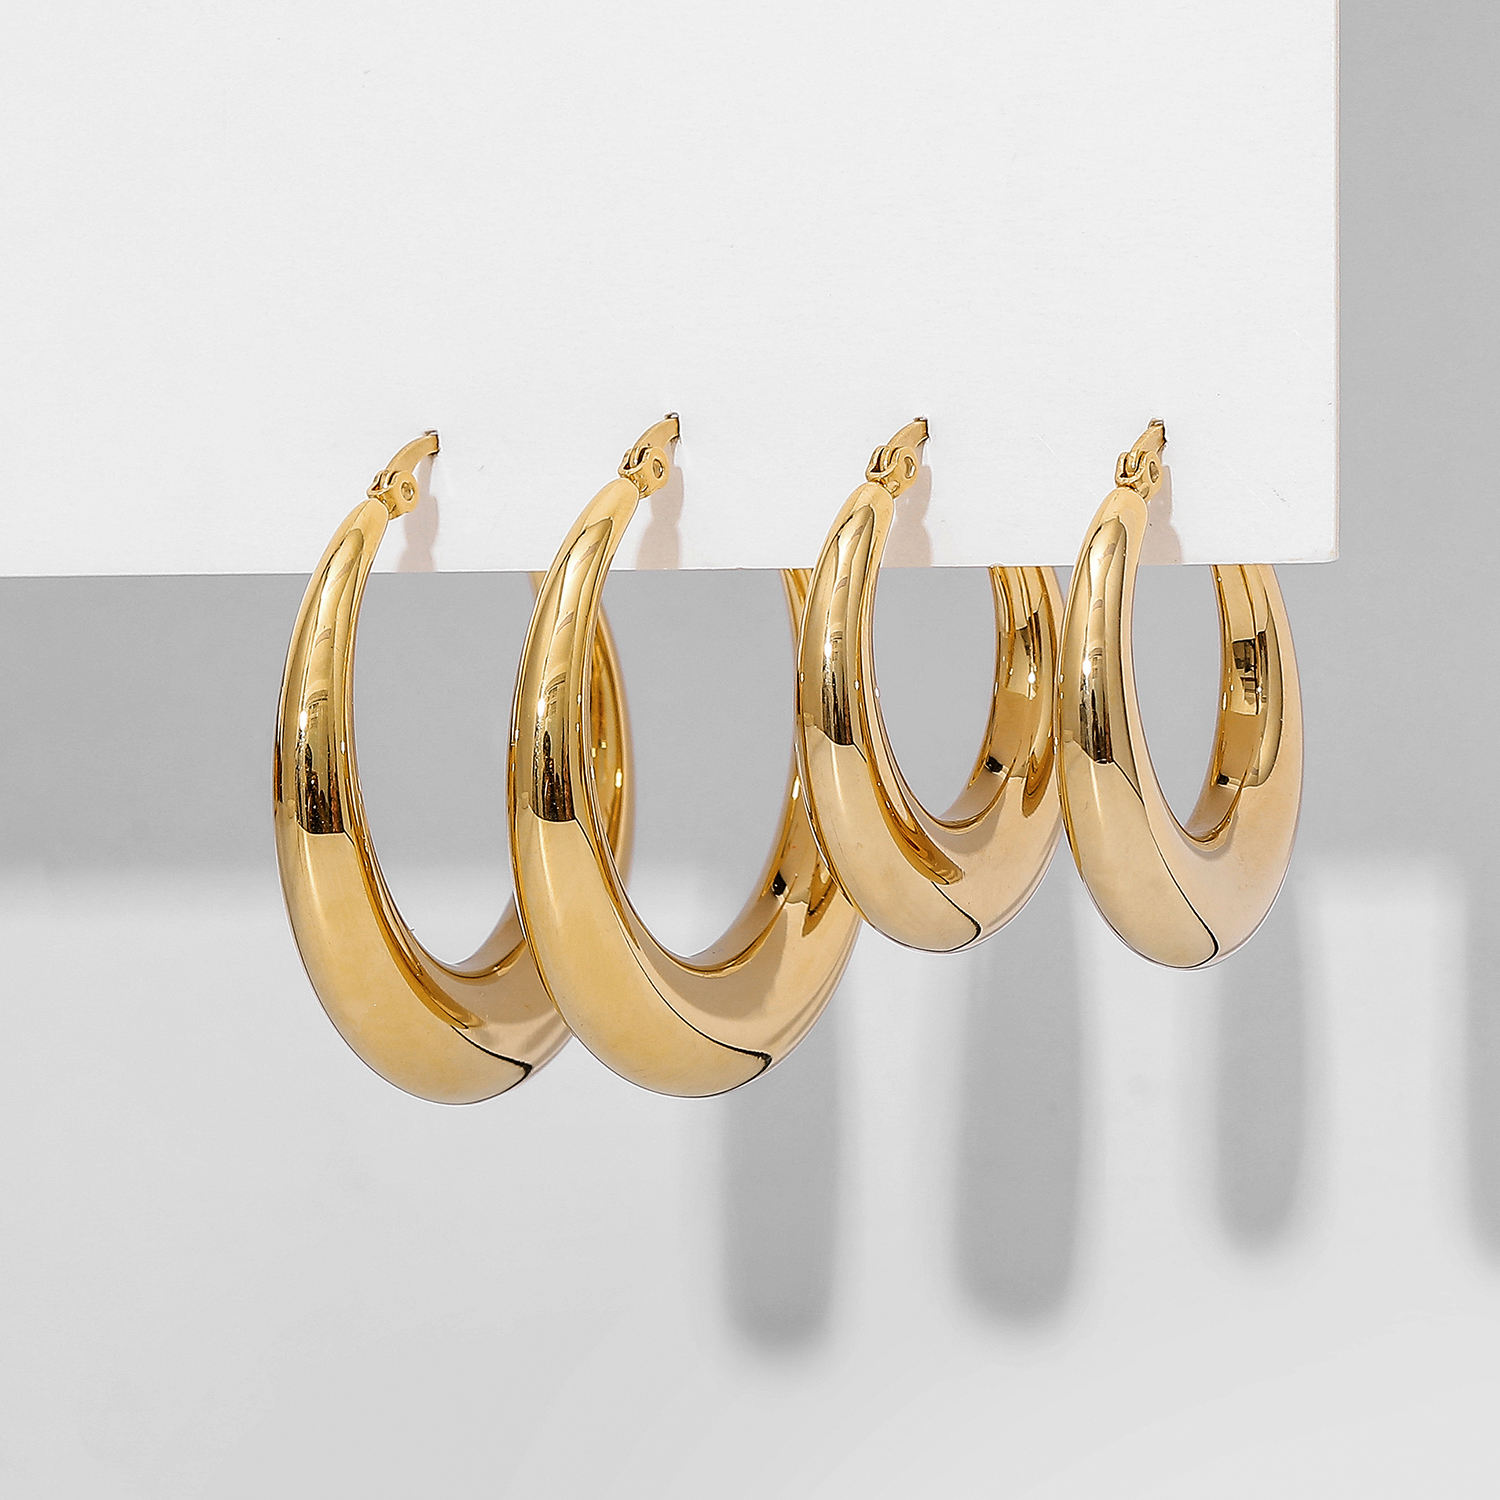 316L titanium steel hollow Crescent smooth earrings Real 18K gold plated stainless steel hoop earrings